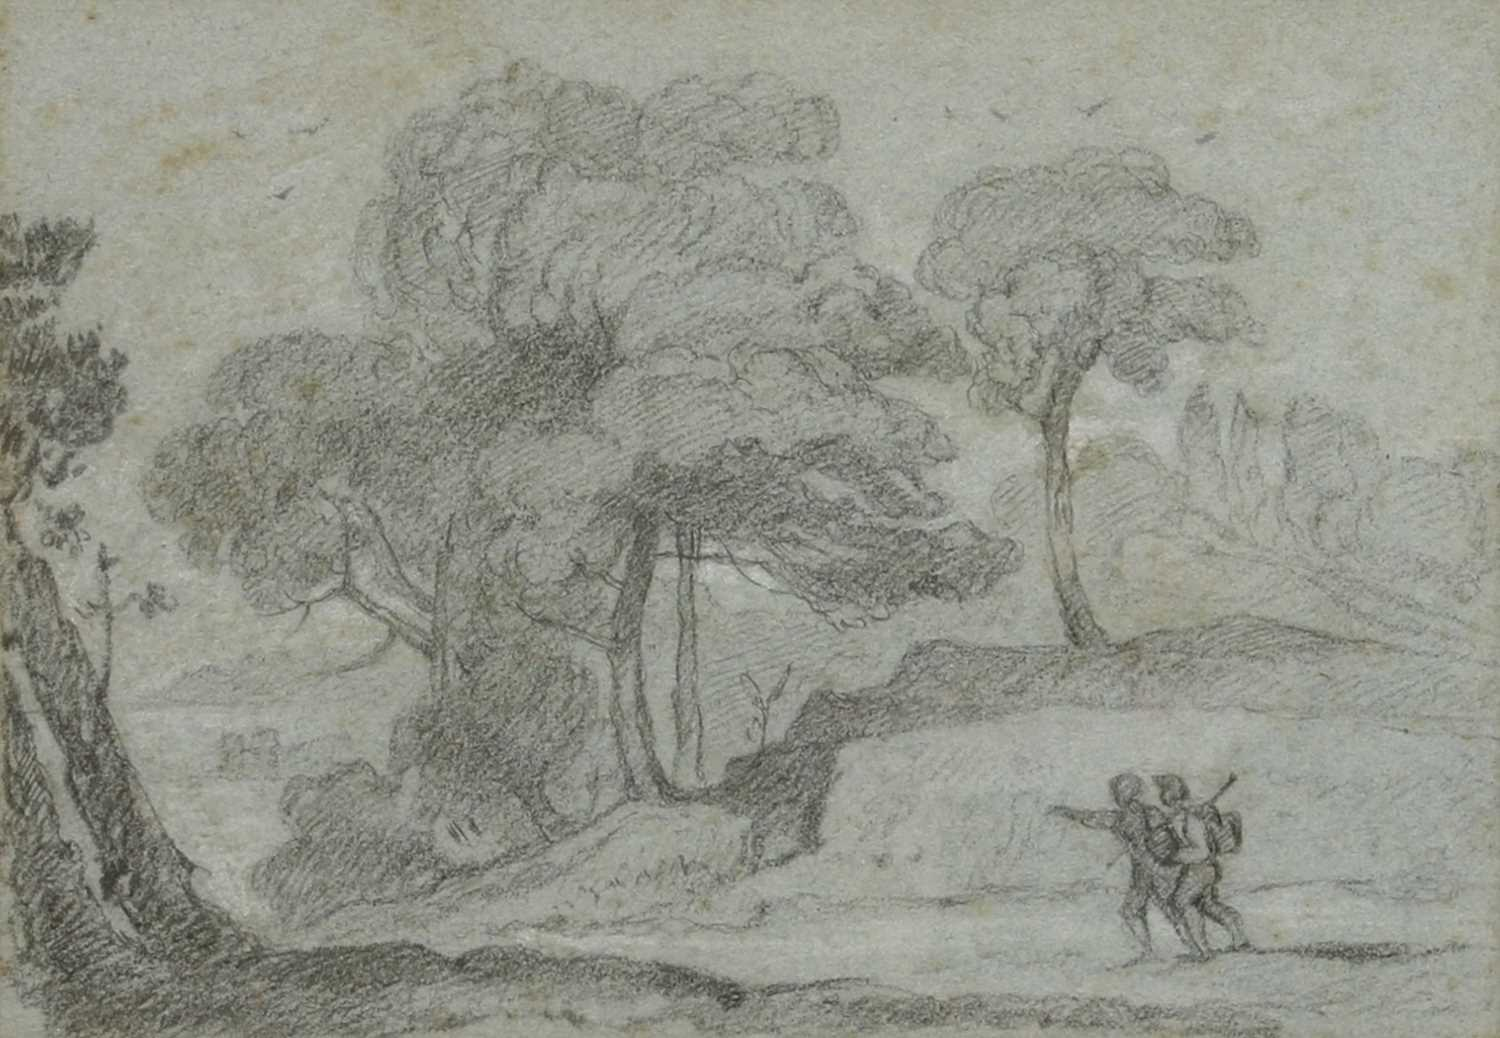 Attributed to John Sell Cotman (1782-1842) - Image 4 of 6